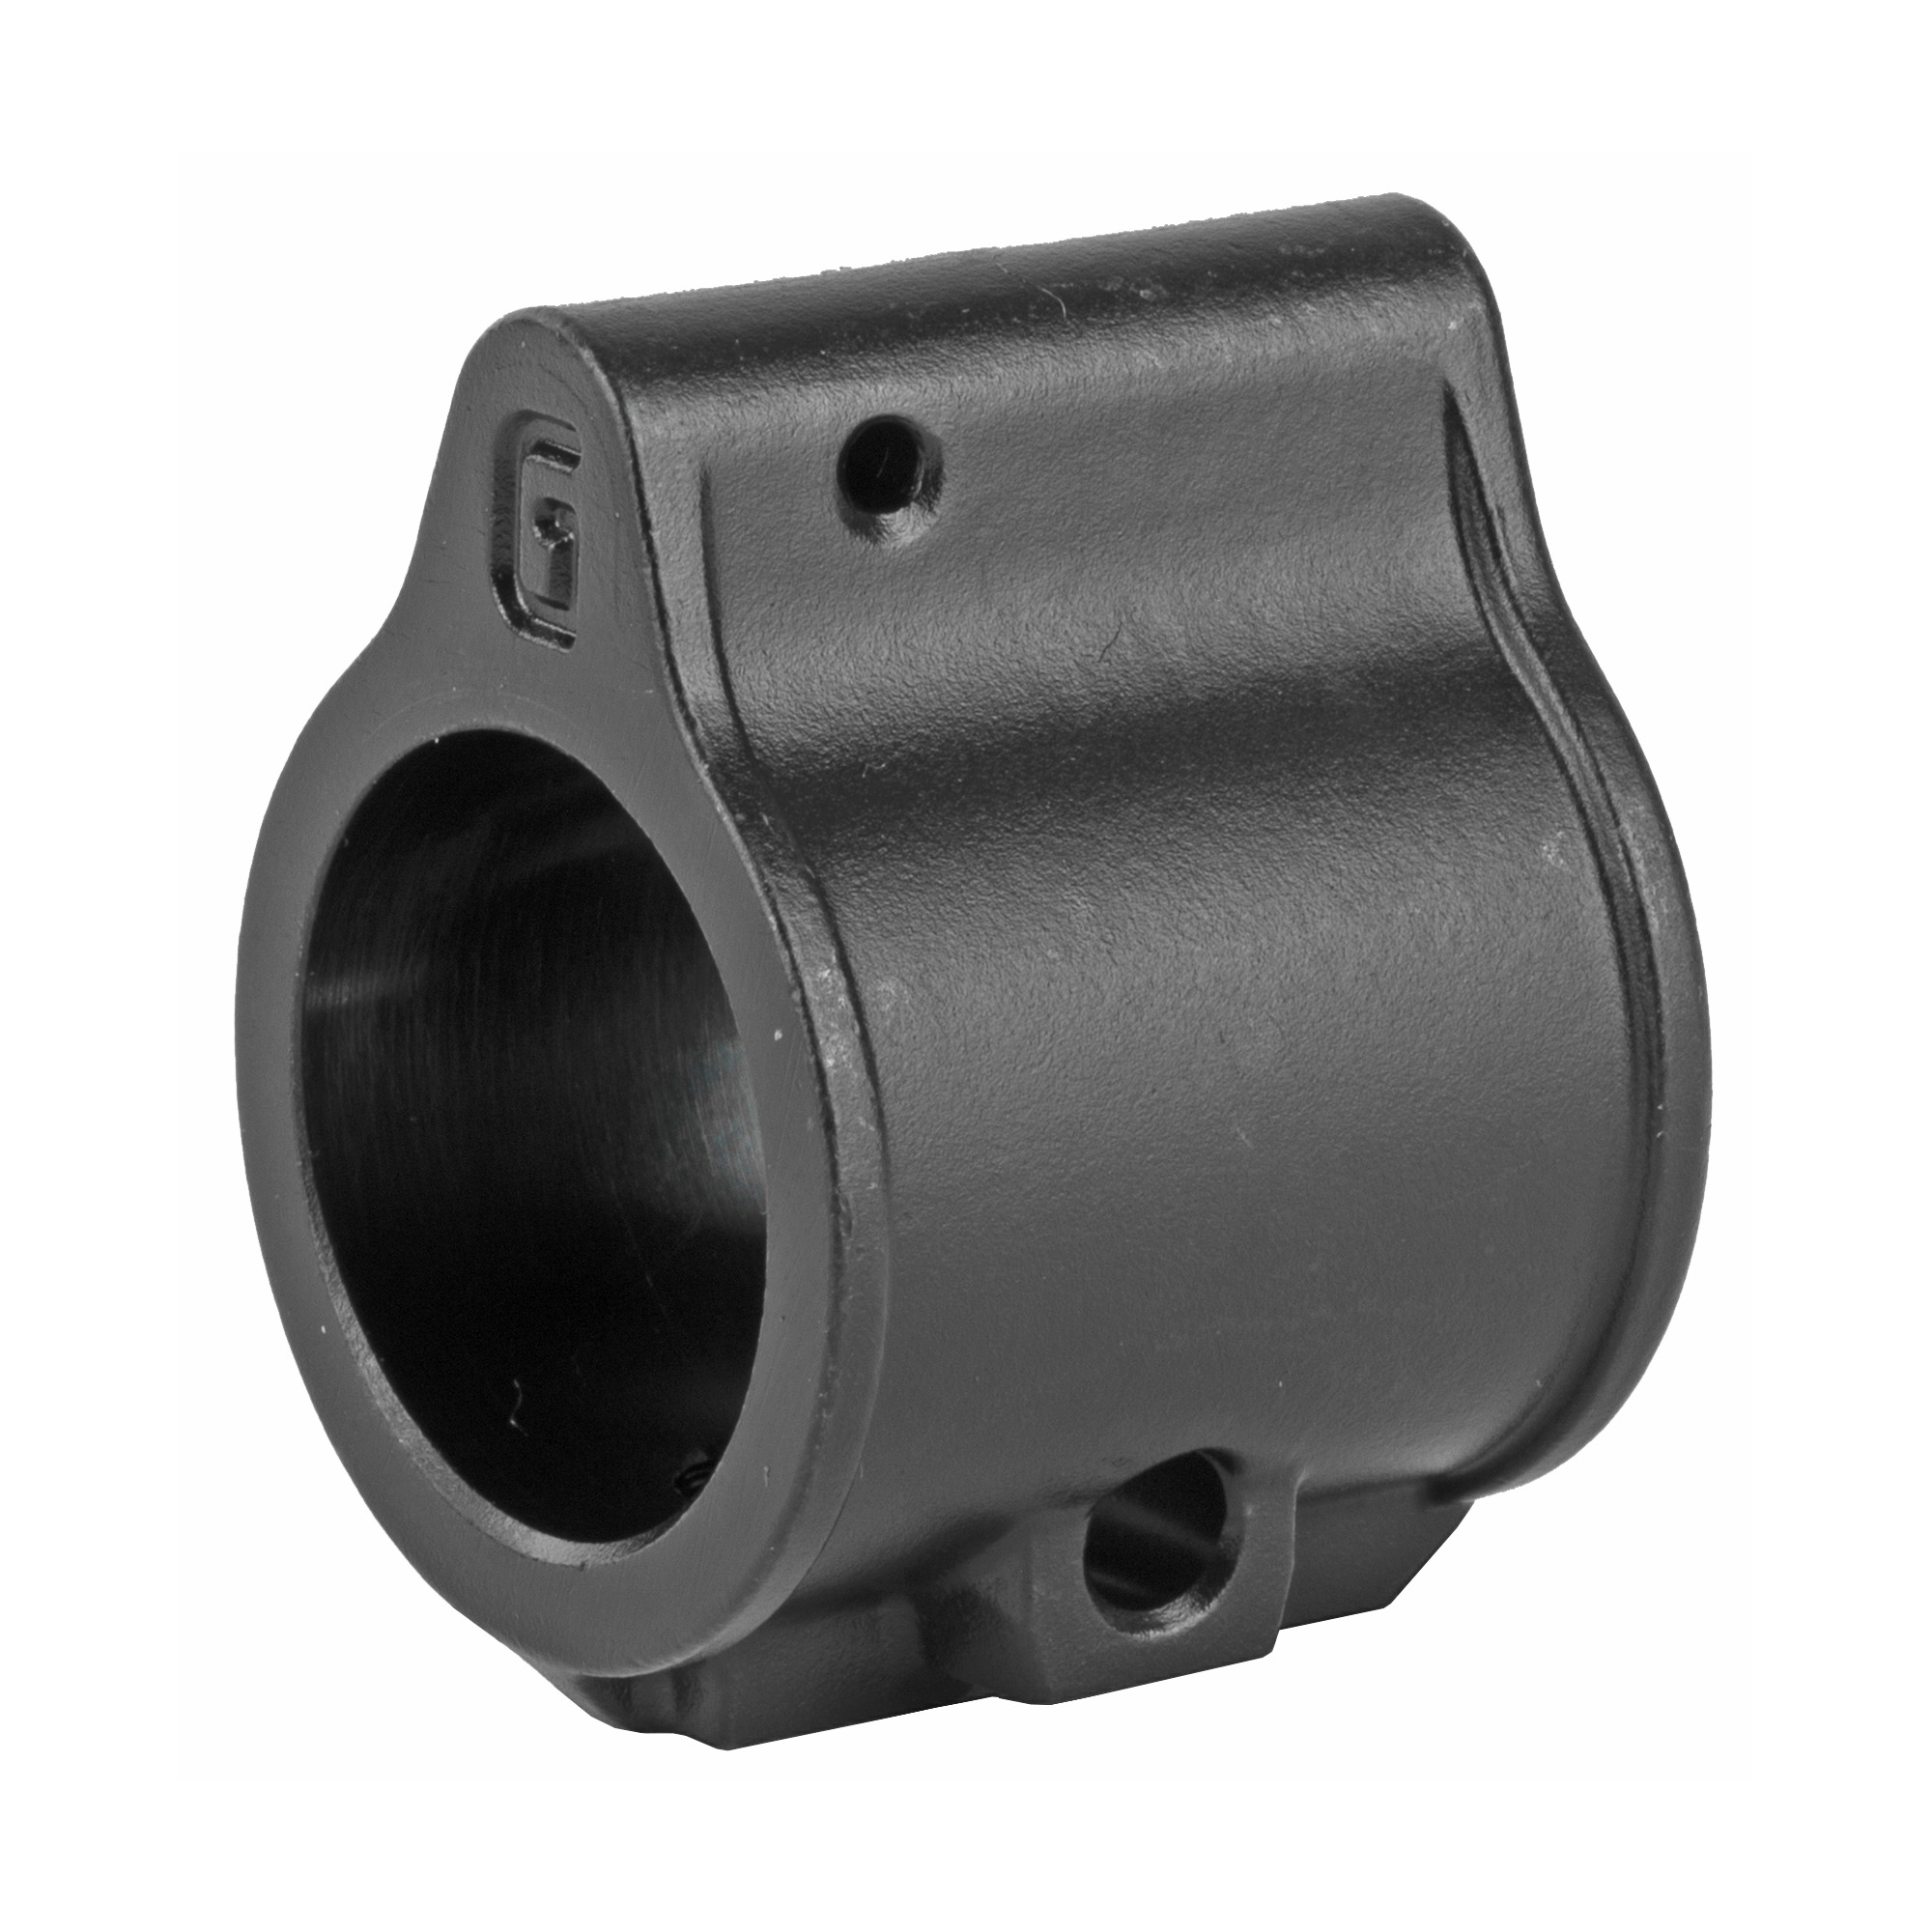 """Standard Super Gas Block Nitride - The bore of the SGB is machined to closely fit around .750"""" diameter mounting bosses found on most M4 Carbines and AR-15 rifles."""